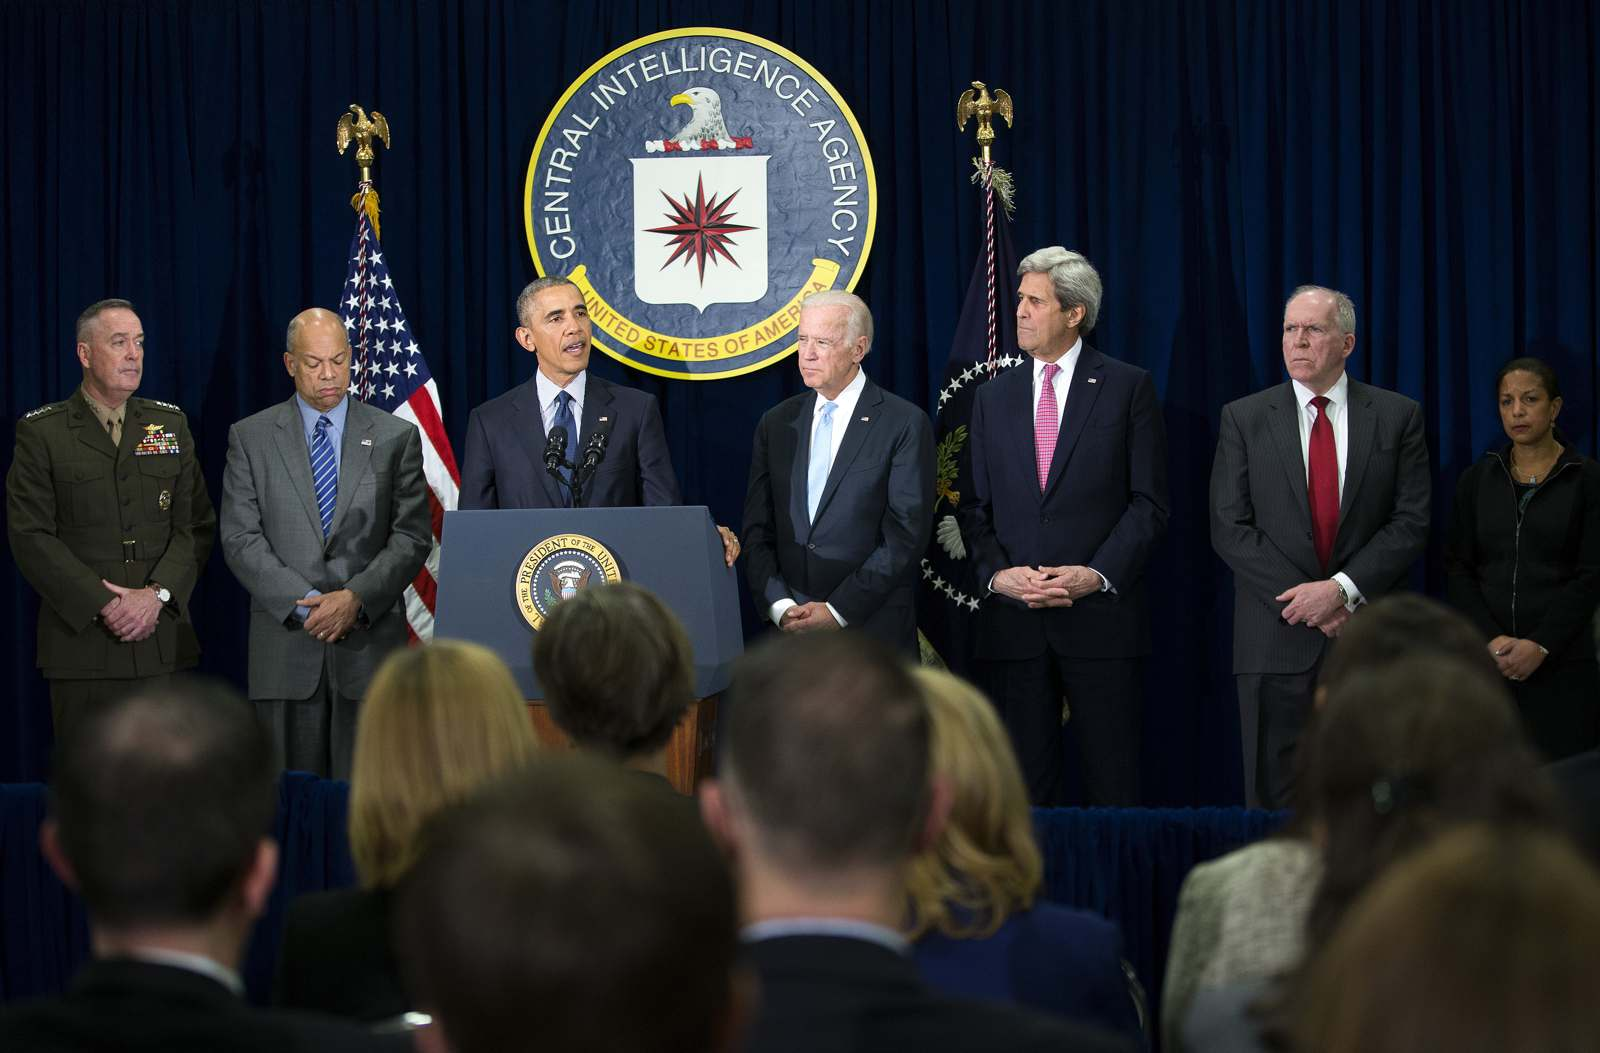 President Barack Obama, with a group of national security officials, speaks following a meeting at CIA headquarters in Langley, Va., April 13. (New York Times)